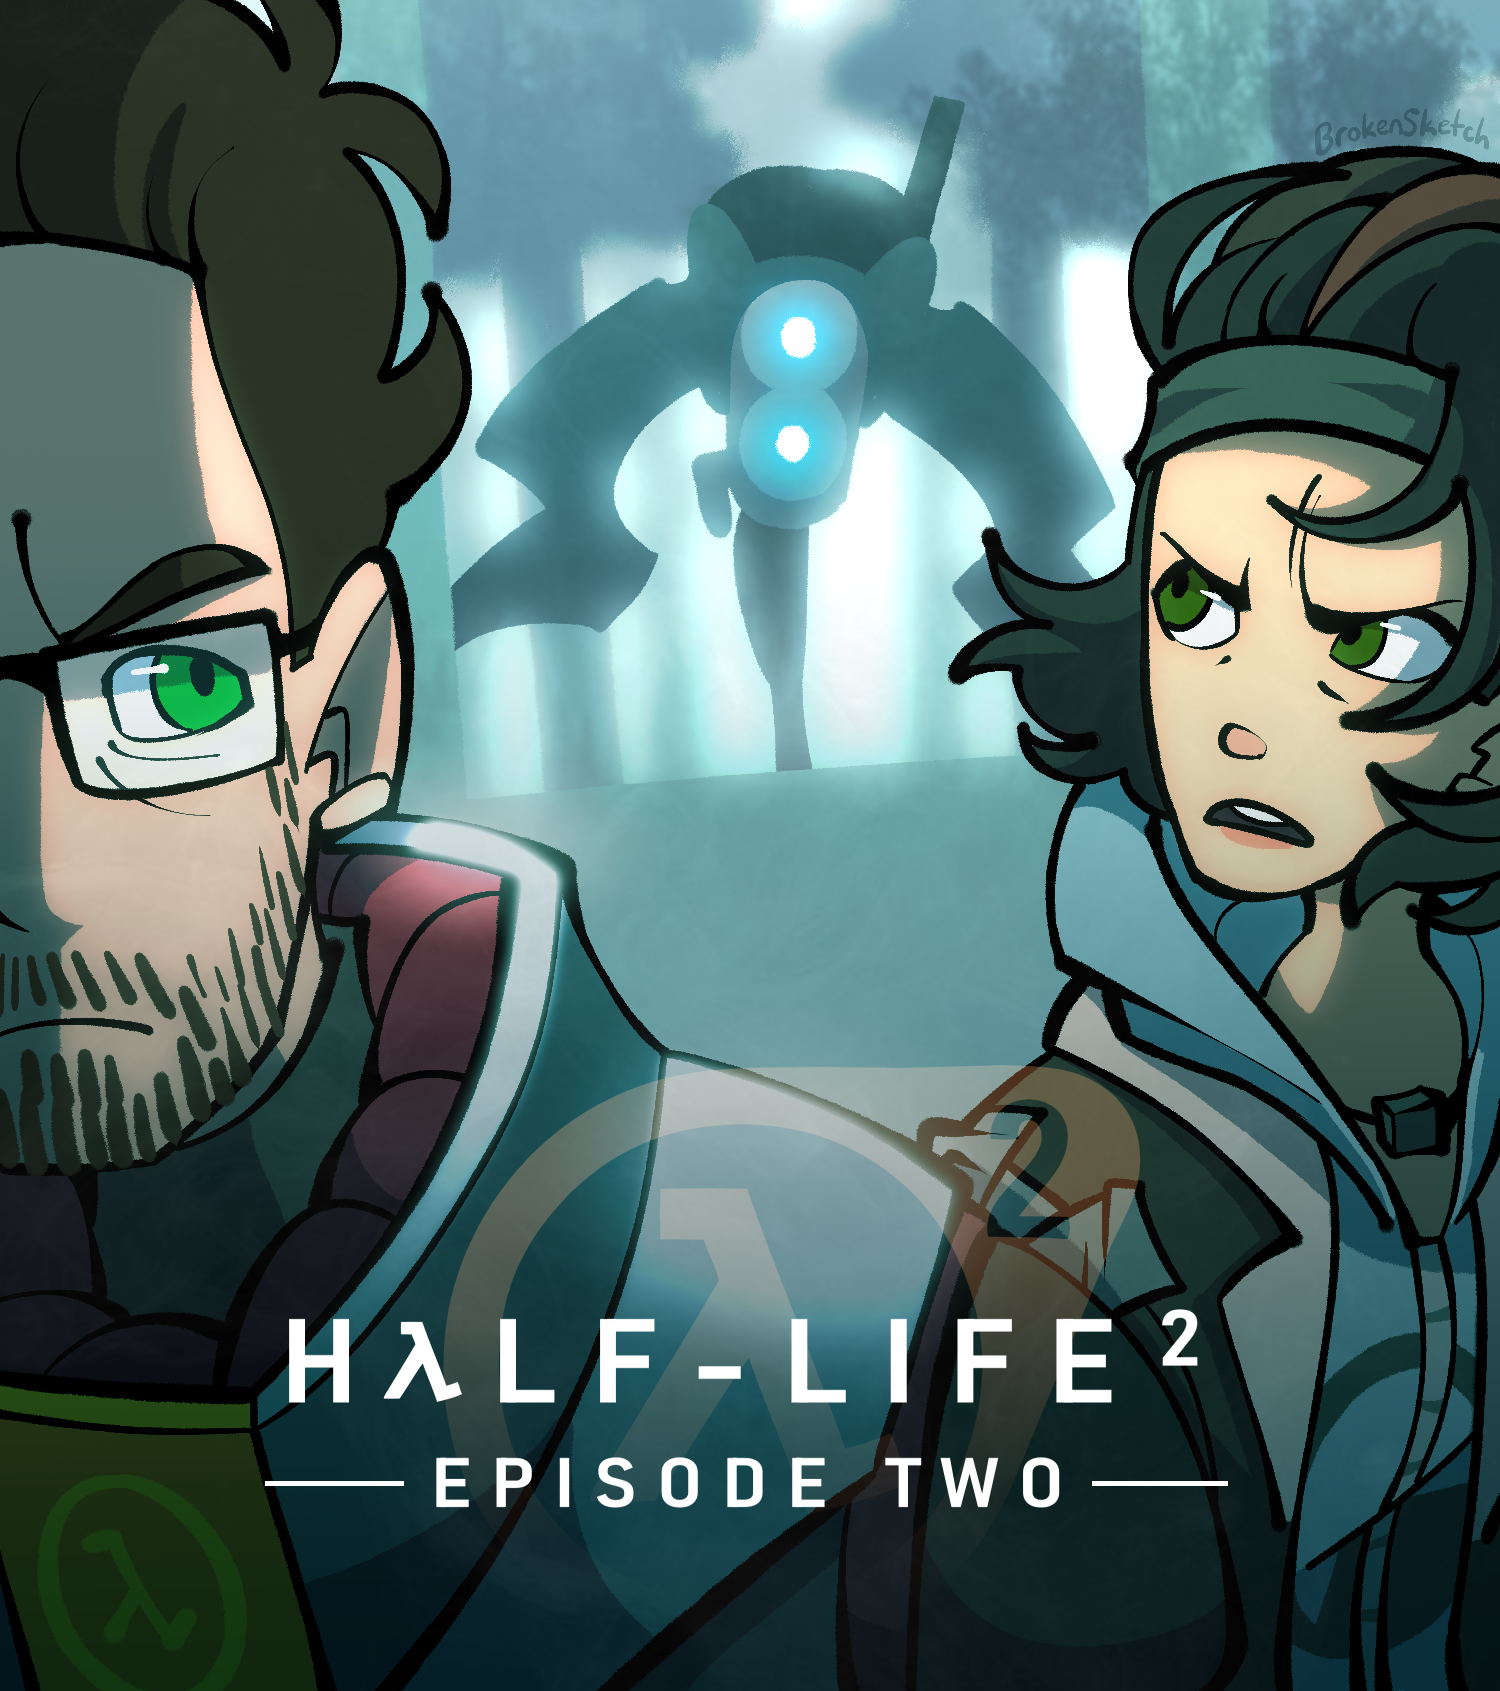 EPISODE TWO